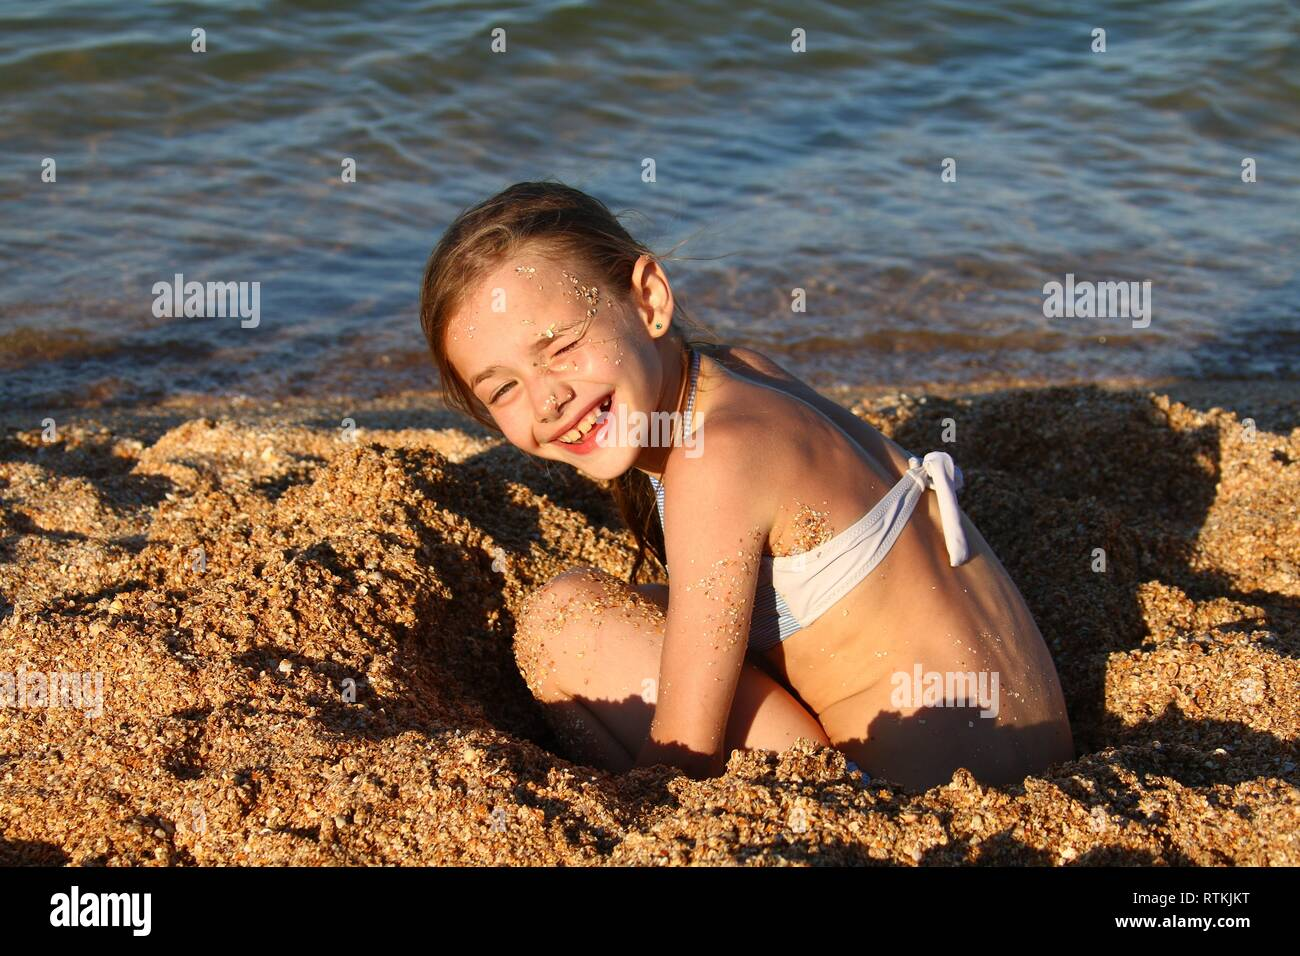 holidays, summer day on the beach by the sea, the girl happily plays with sand in the rays of the setting sun - Stock Image